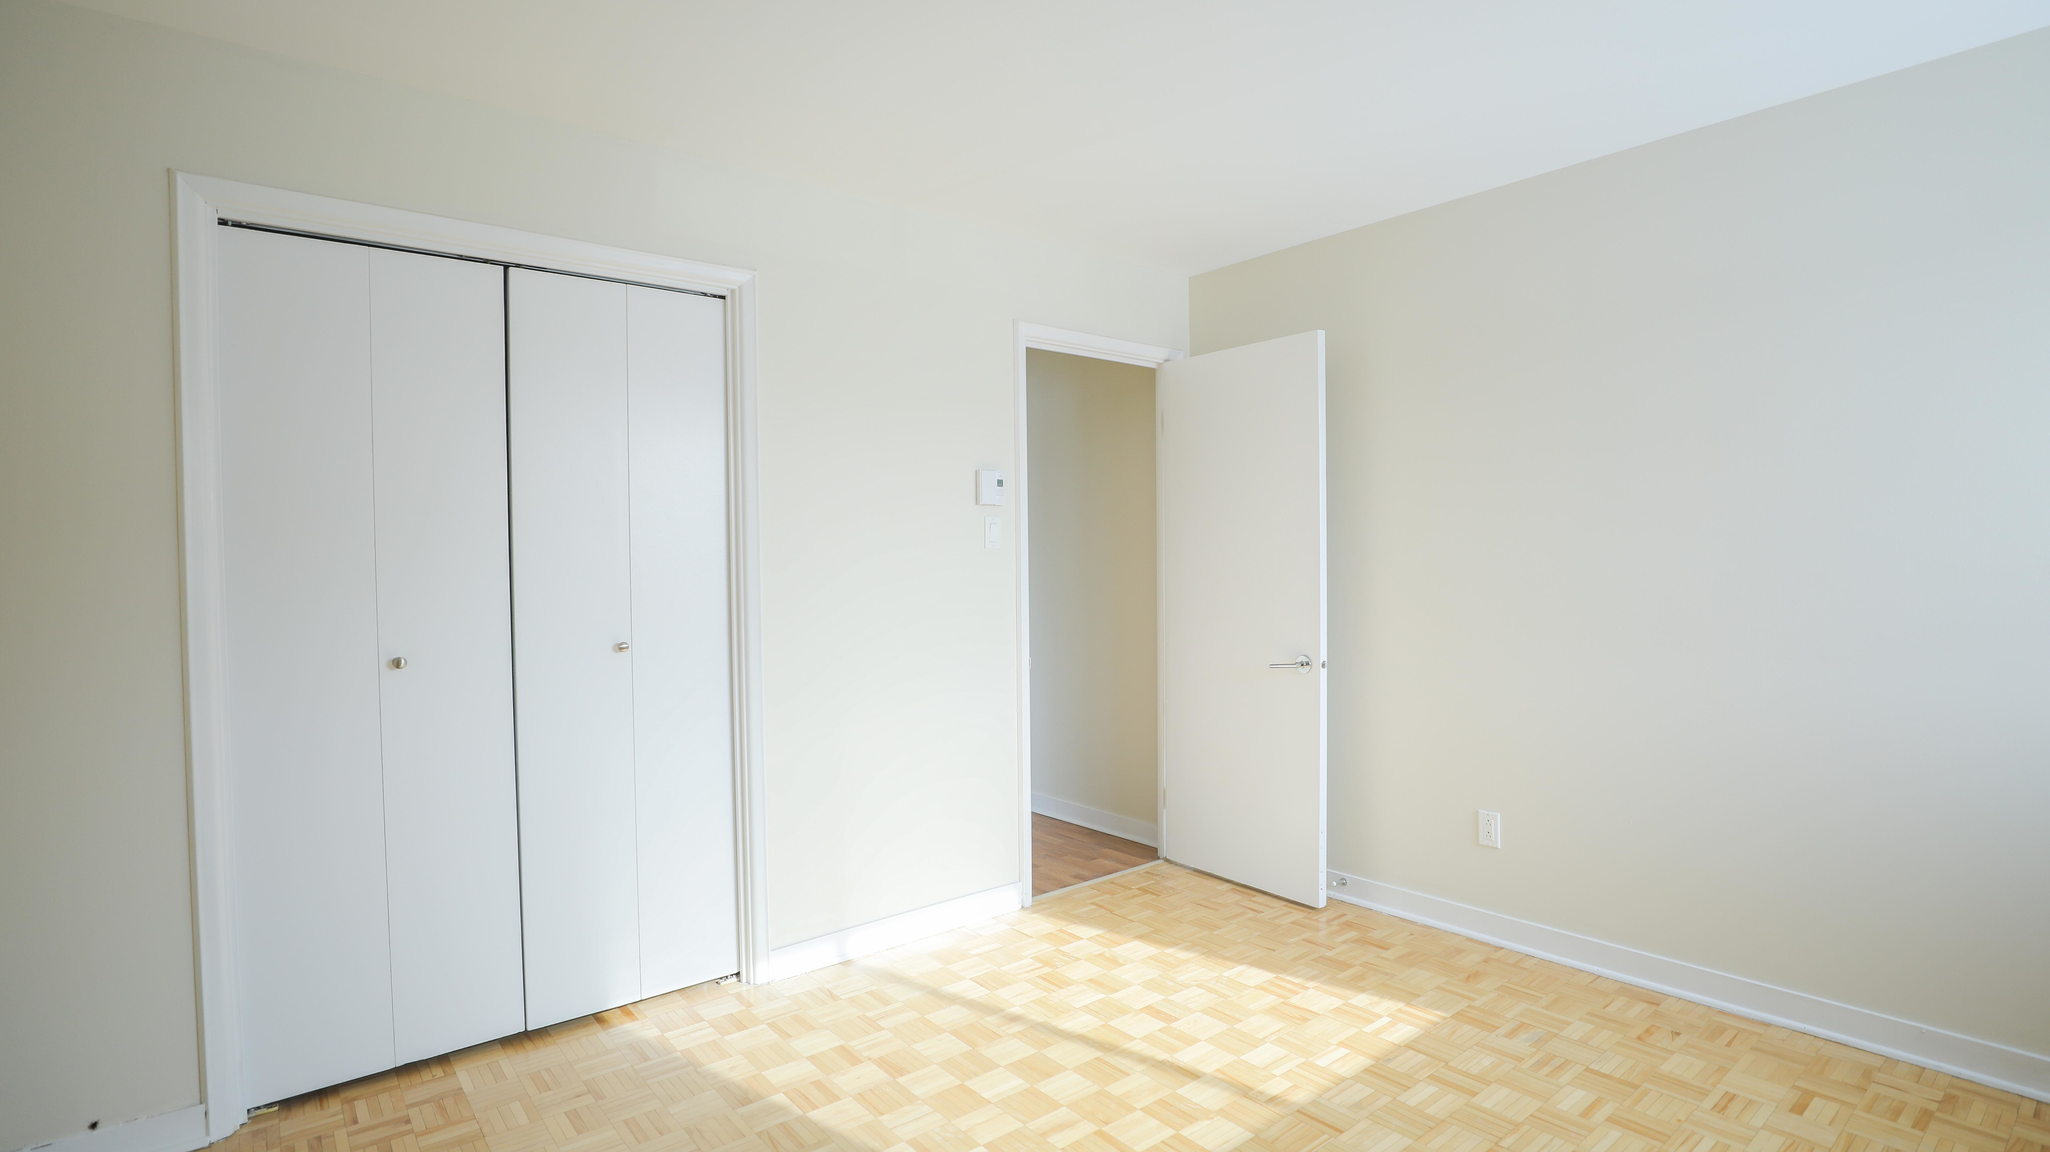 1 bedroom Apartments for rent in Quebec City at Place Charlesbourg - Photo 14 - RentersPages – L407125